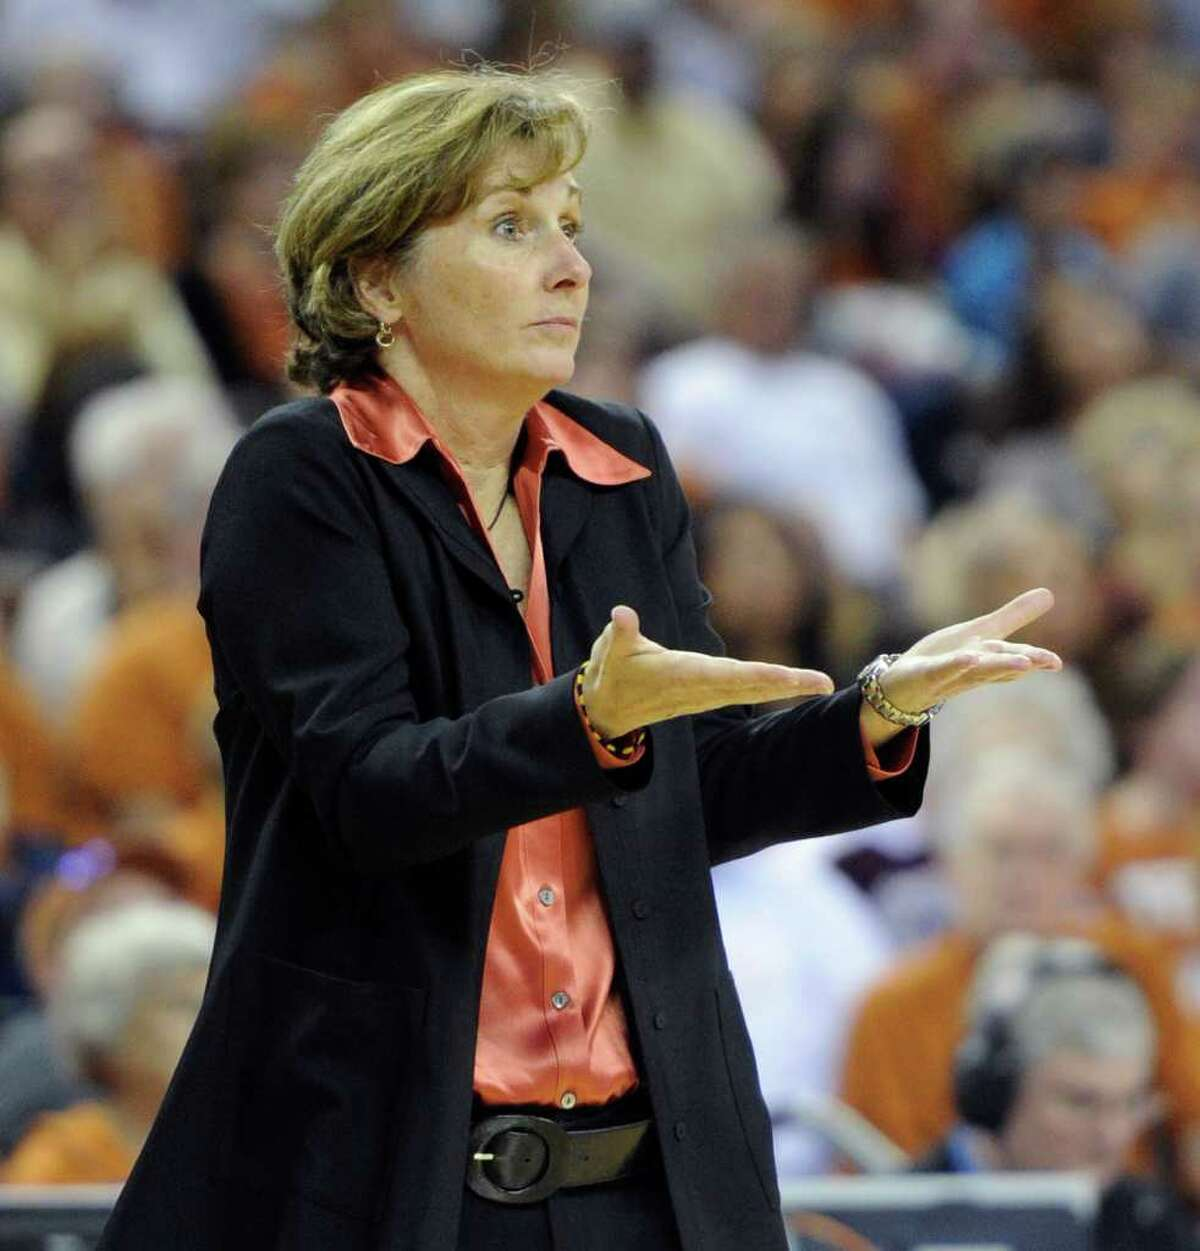 Texas women's basketball coach Gail Goestenkors reacts to a call favoring Texas A&M during the second half of an NCAA college basketball game Sunday, Feb. 27, 2011, in Austin, Texas. Texas A&M won 68-65.